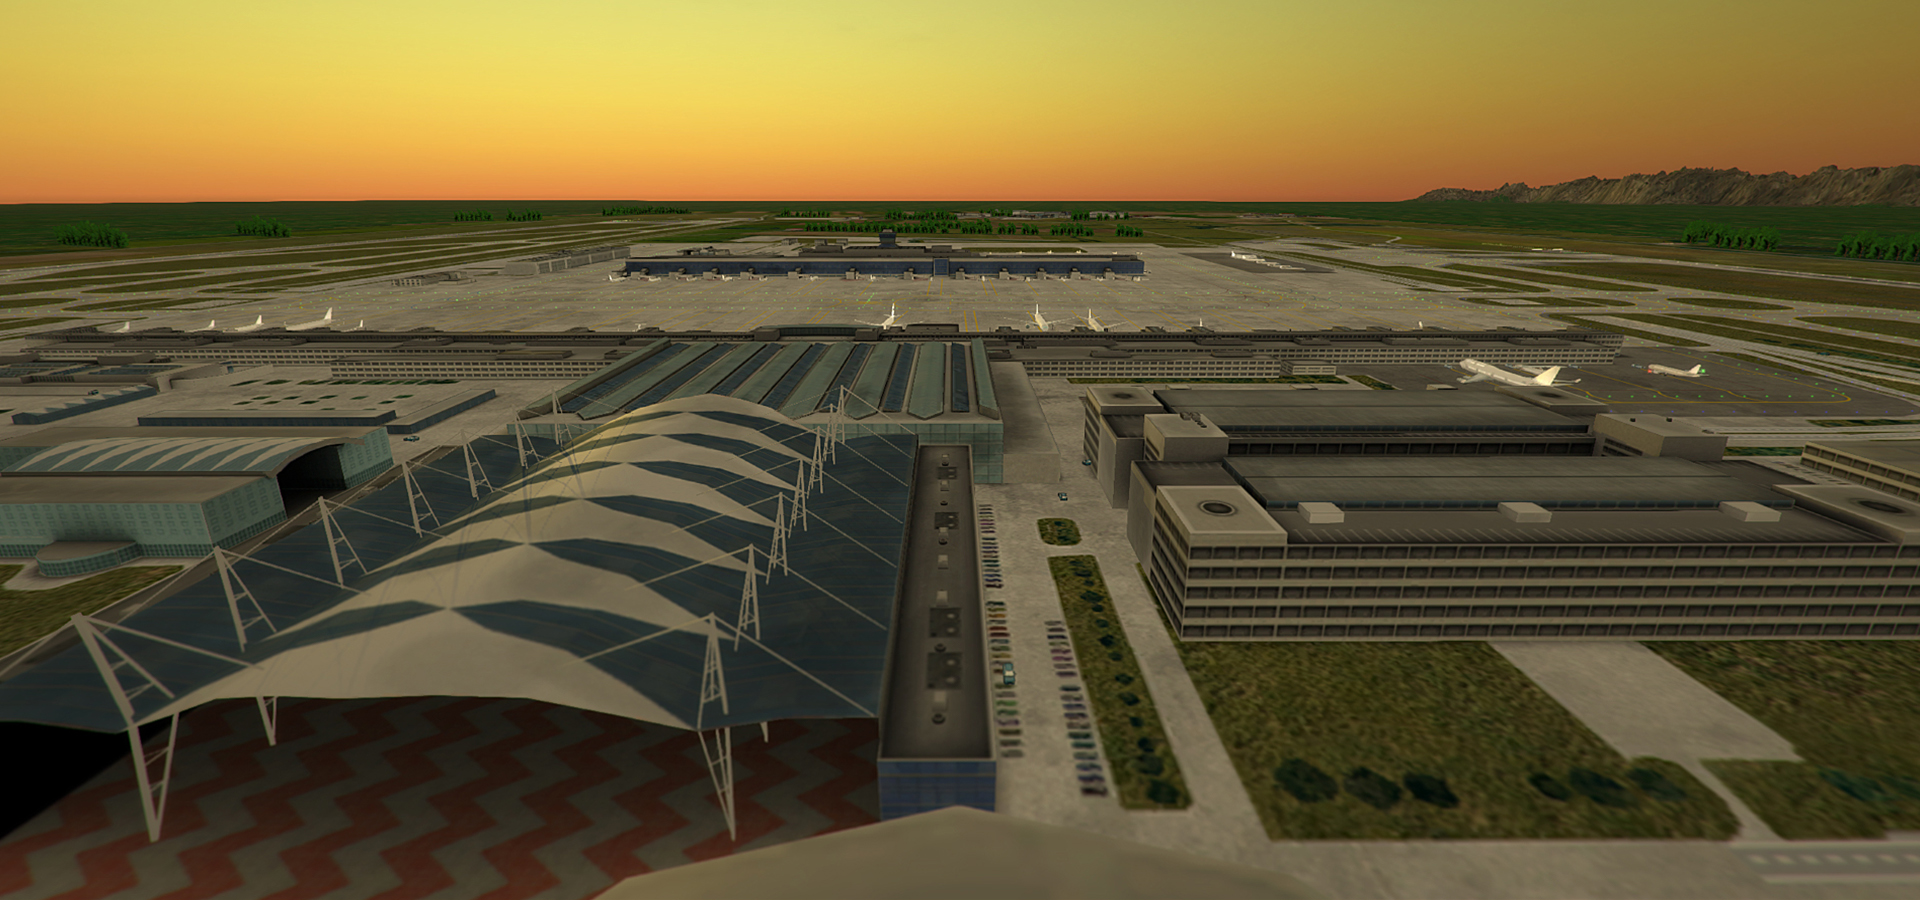 NYERGES DESIGN - EDDM AIRPORT FOR TOWER! 3D